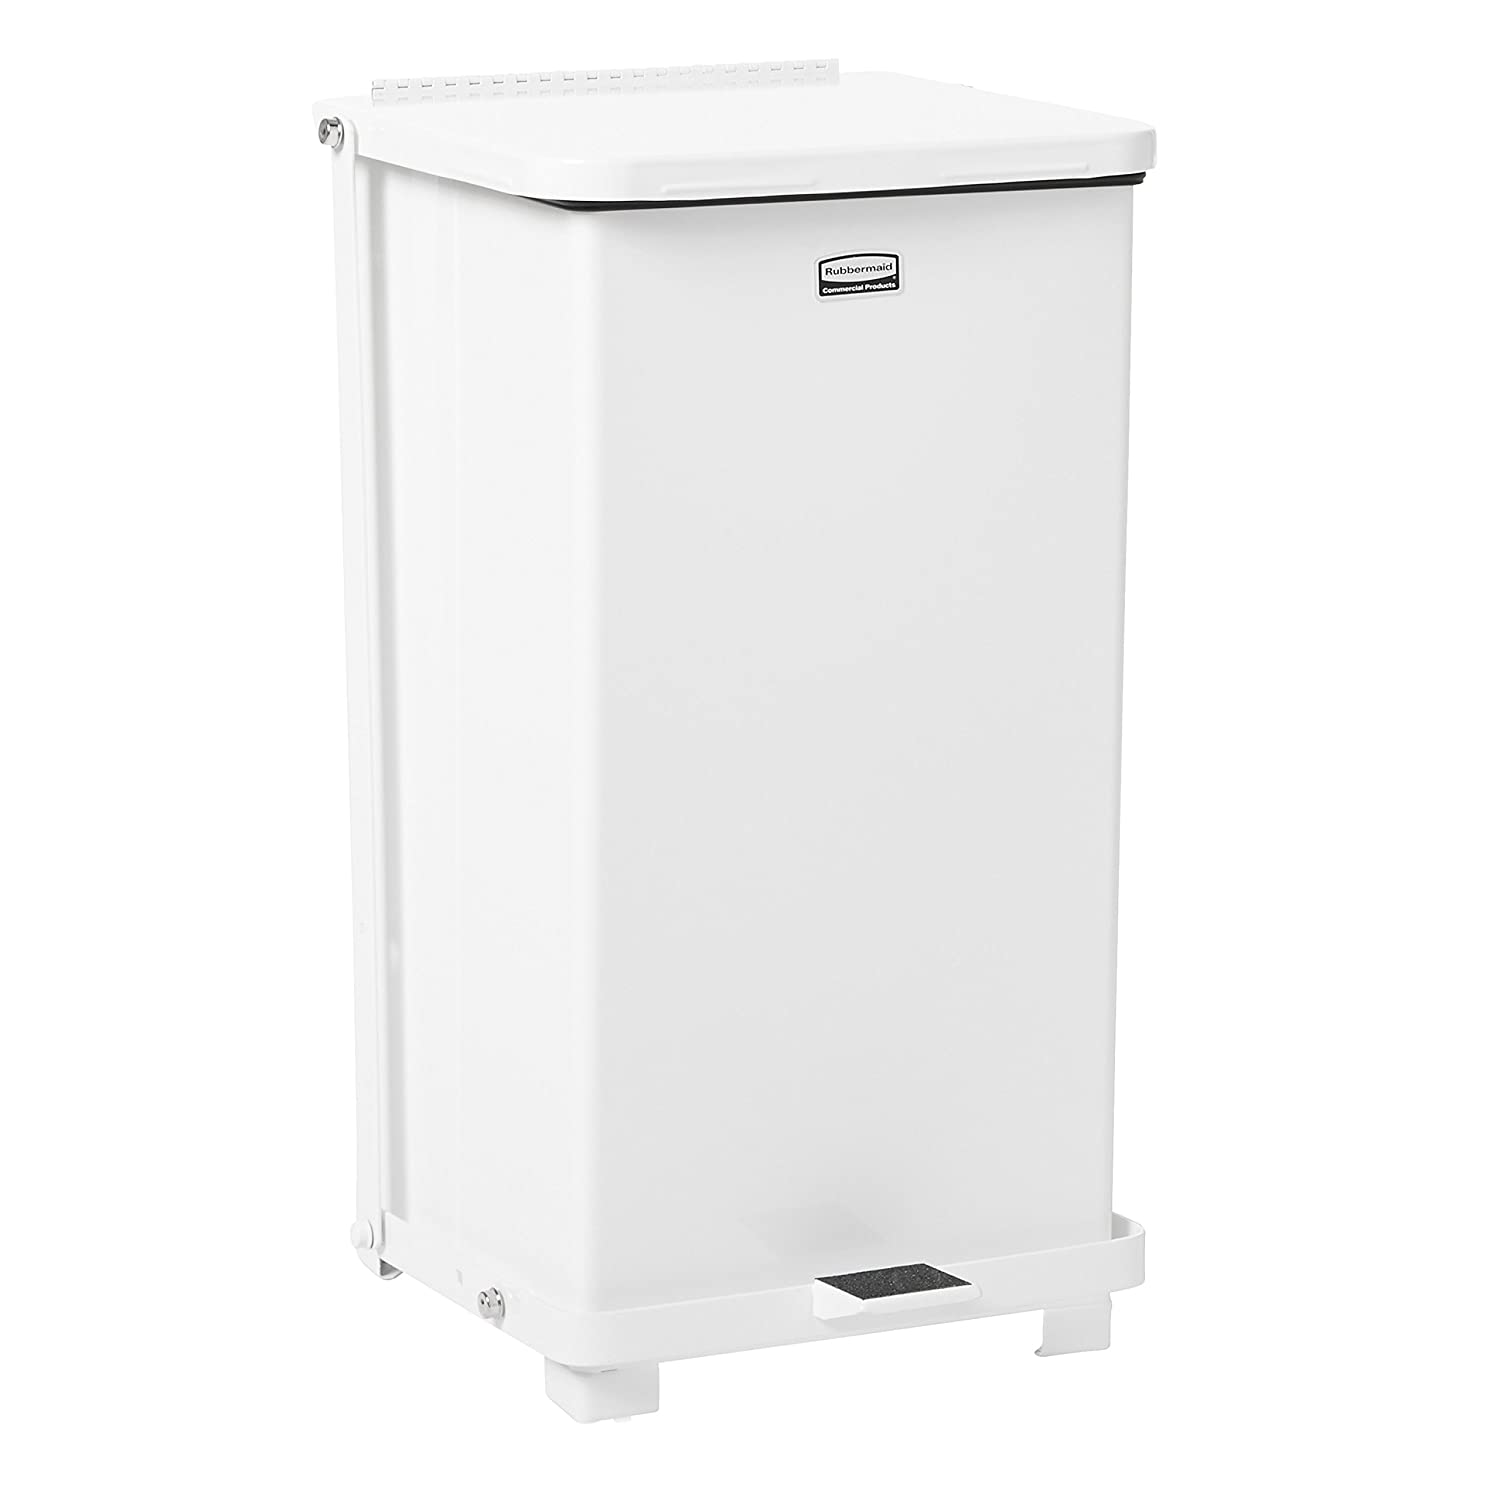 Rubbermaid Commercial Defenders Step-On Trash Can with Plastic Liner, 12 Gallon, White, FGST12EPLWH